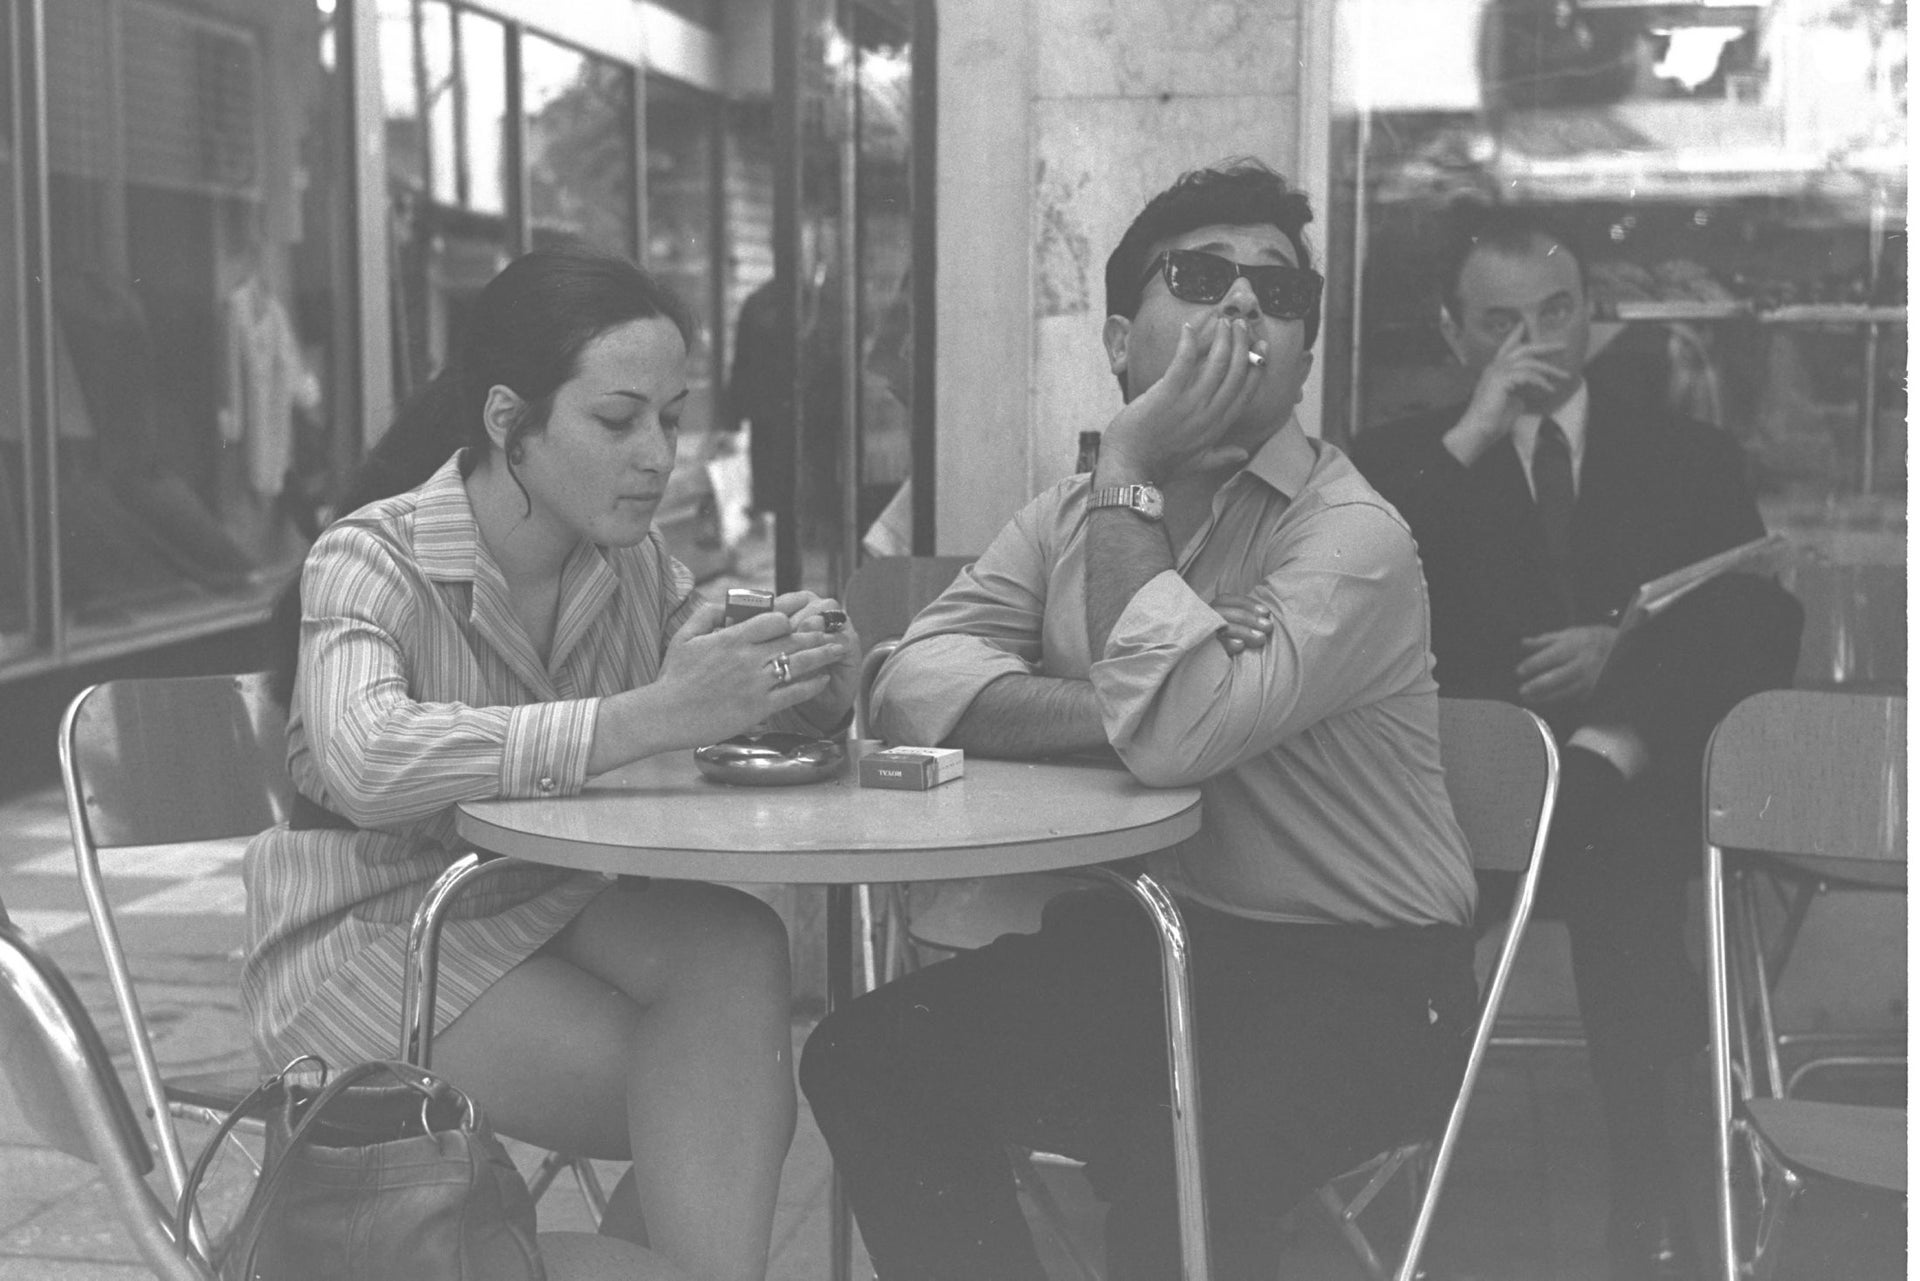 A couple at a café  on Dizengoff Street, Tel Aviv in the 1960s.